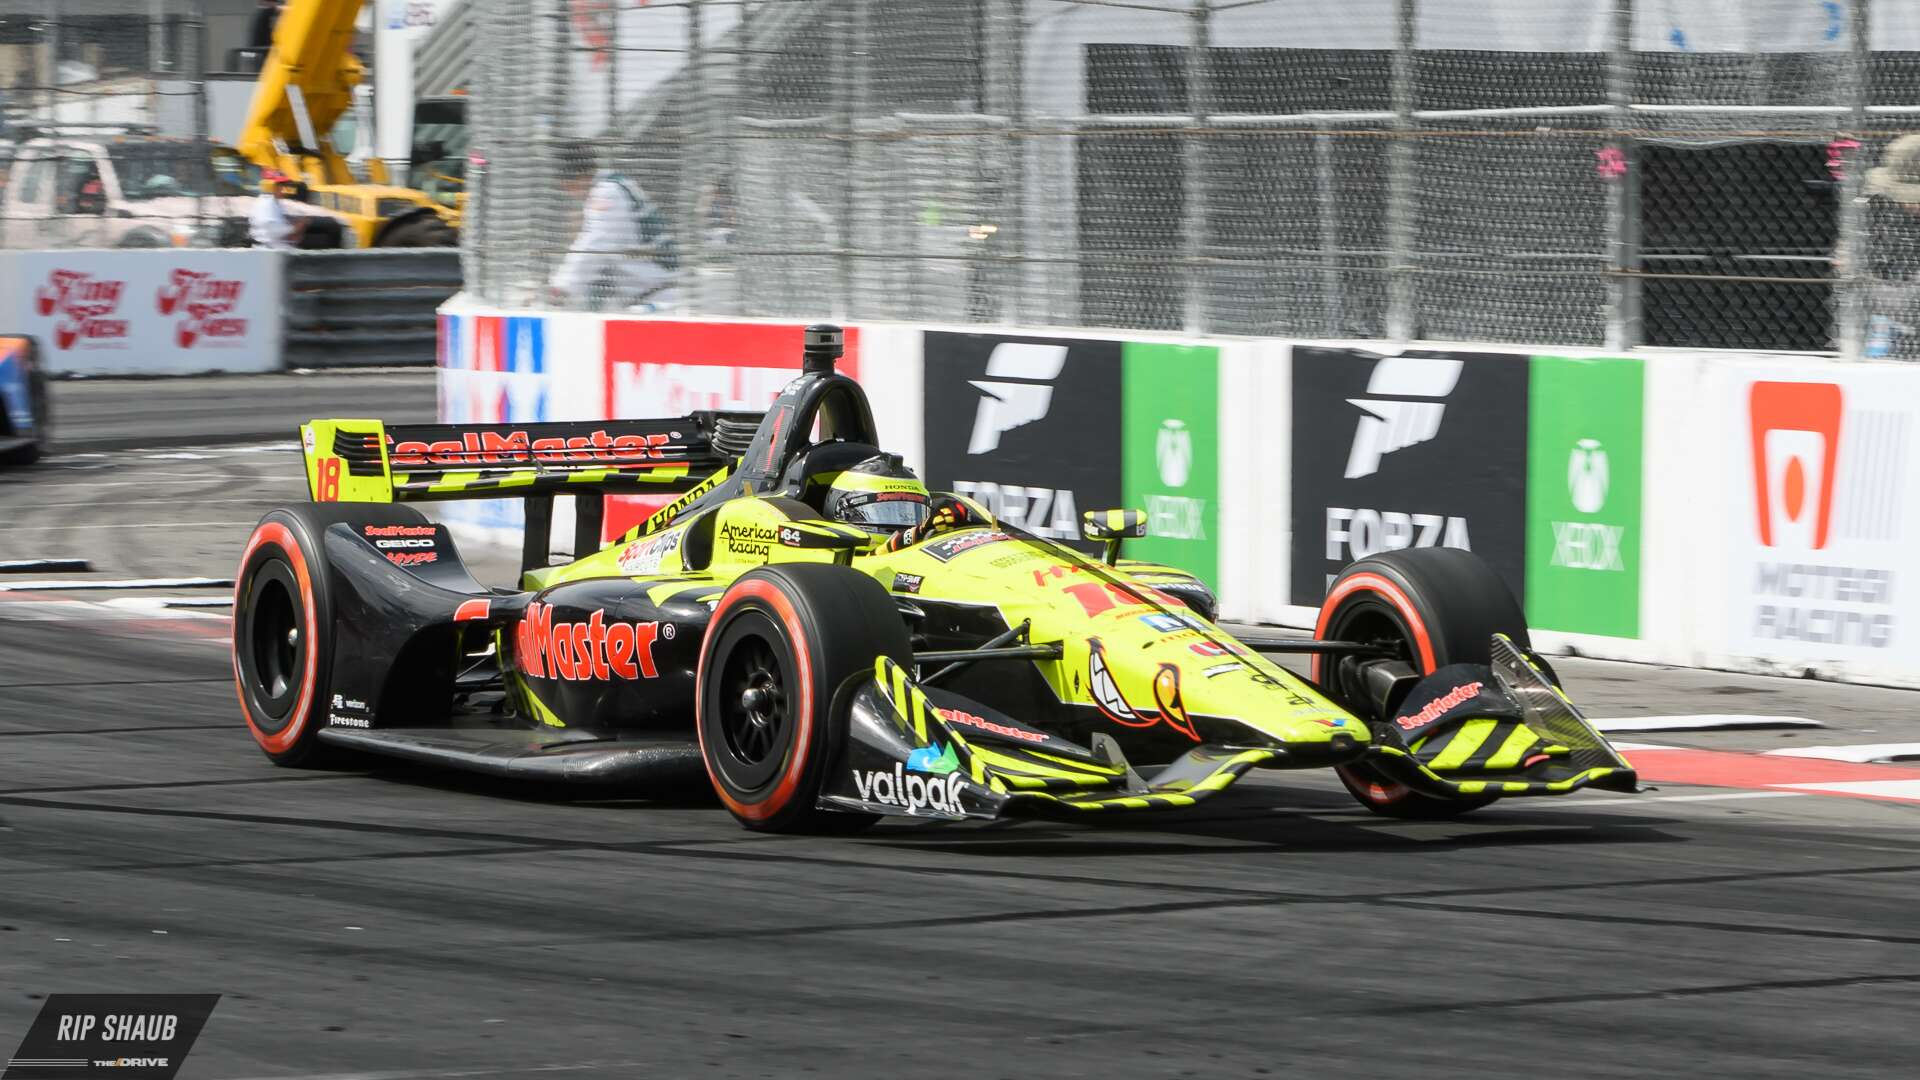 Sebastien bourdais expresses frustration with idiots following 2018 rip shaub all rights reserved voltagebd Images